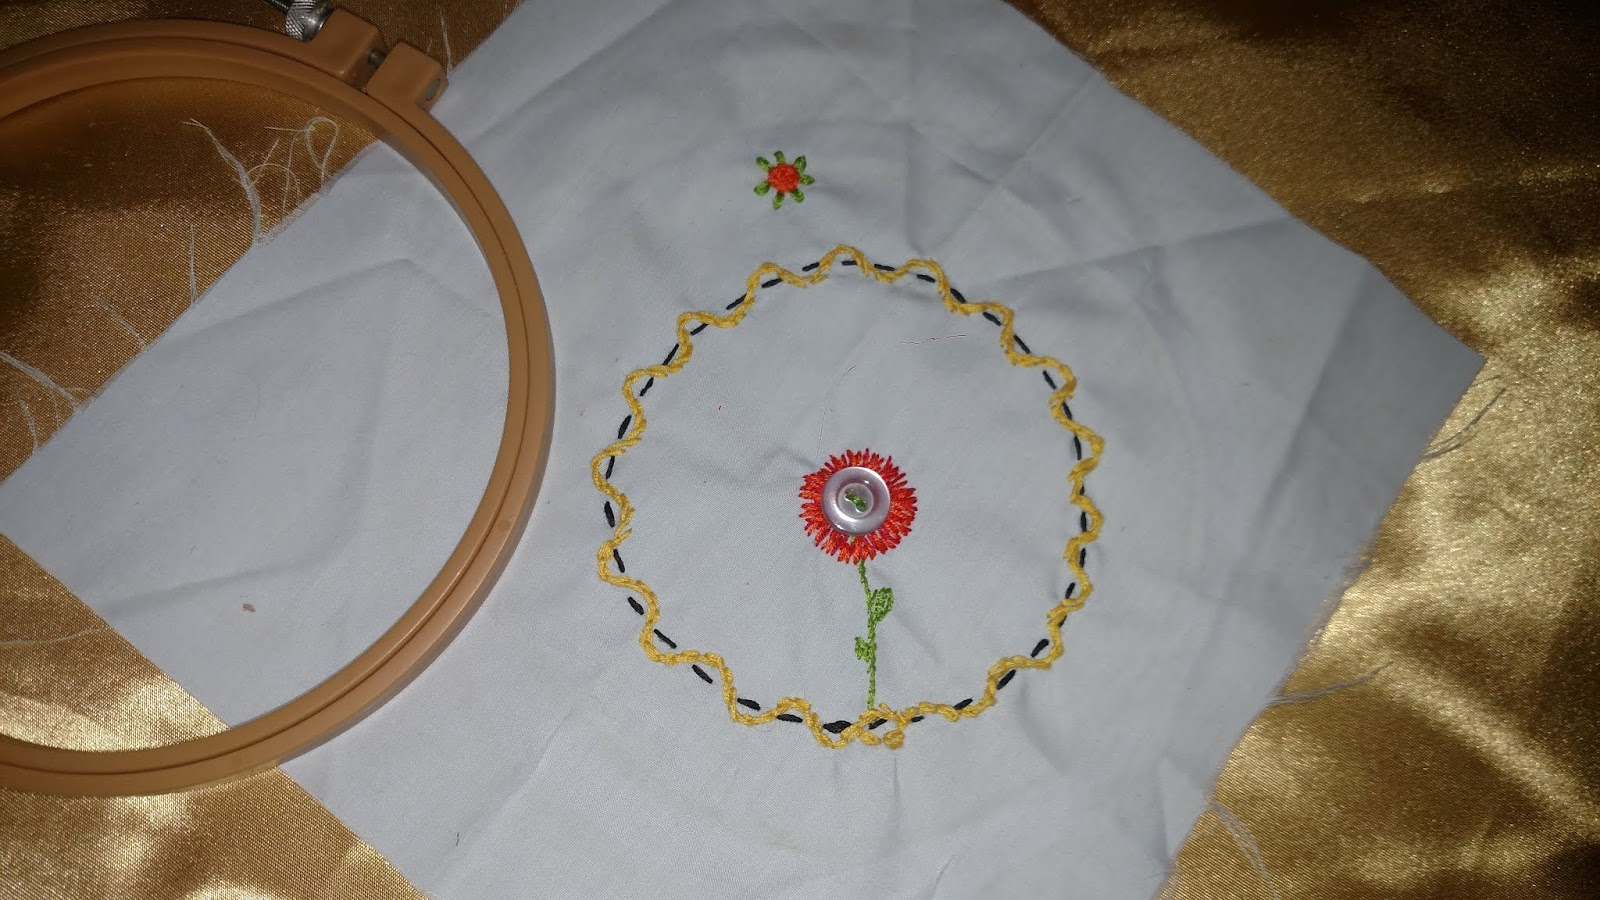 Stitching It Right How To Make A Freehand Embroidery Flower